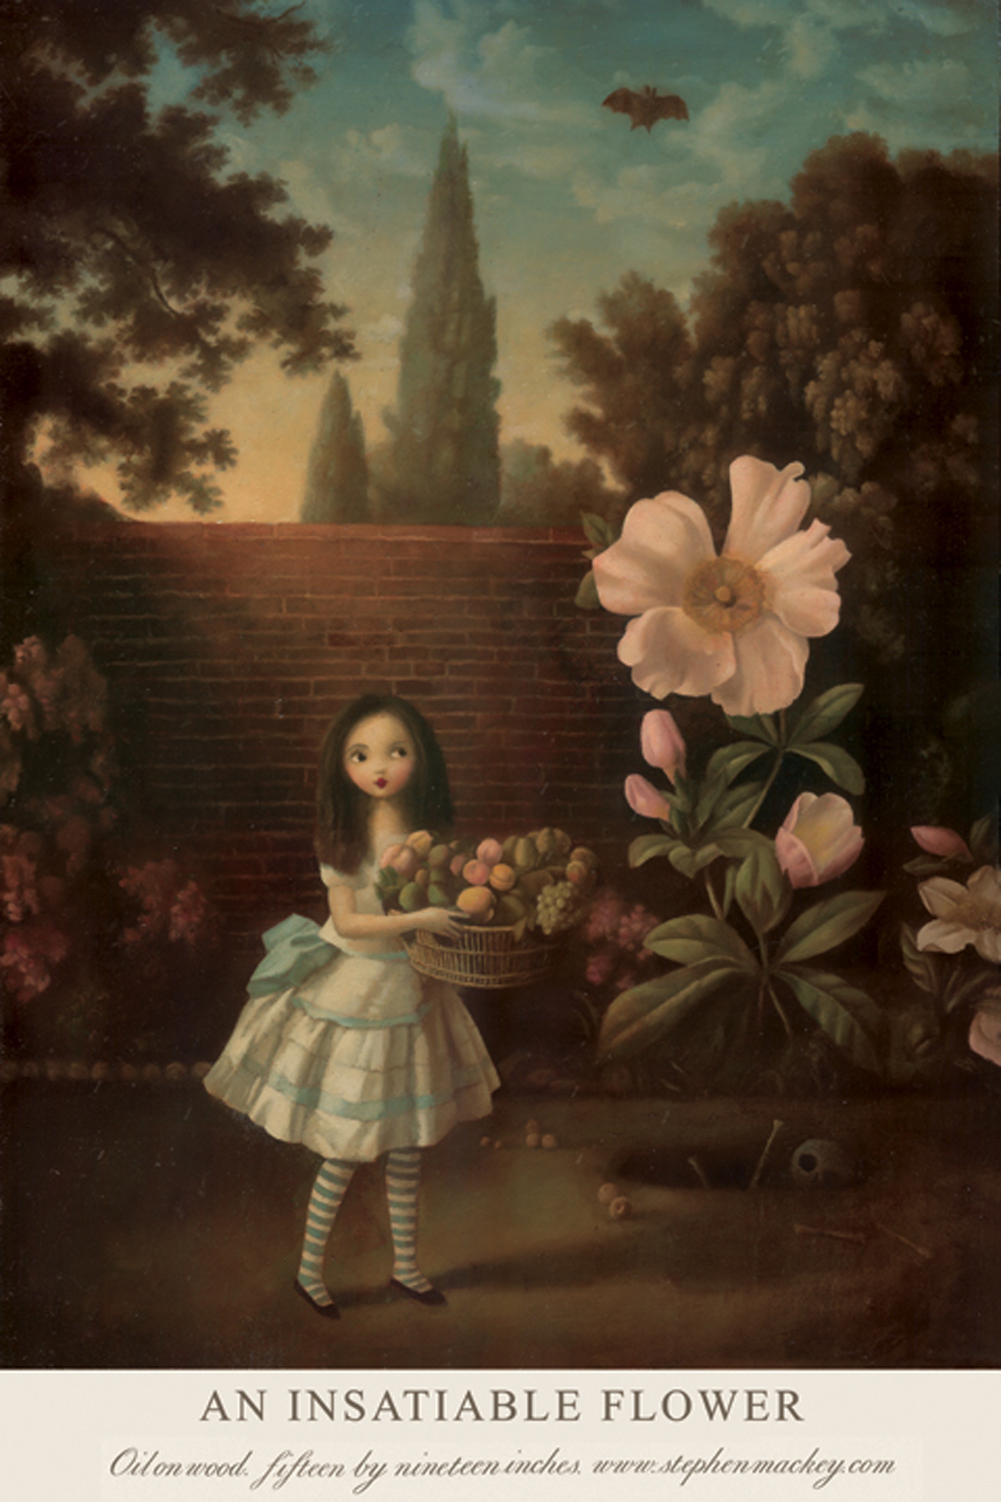 Stephen Mackey (6)